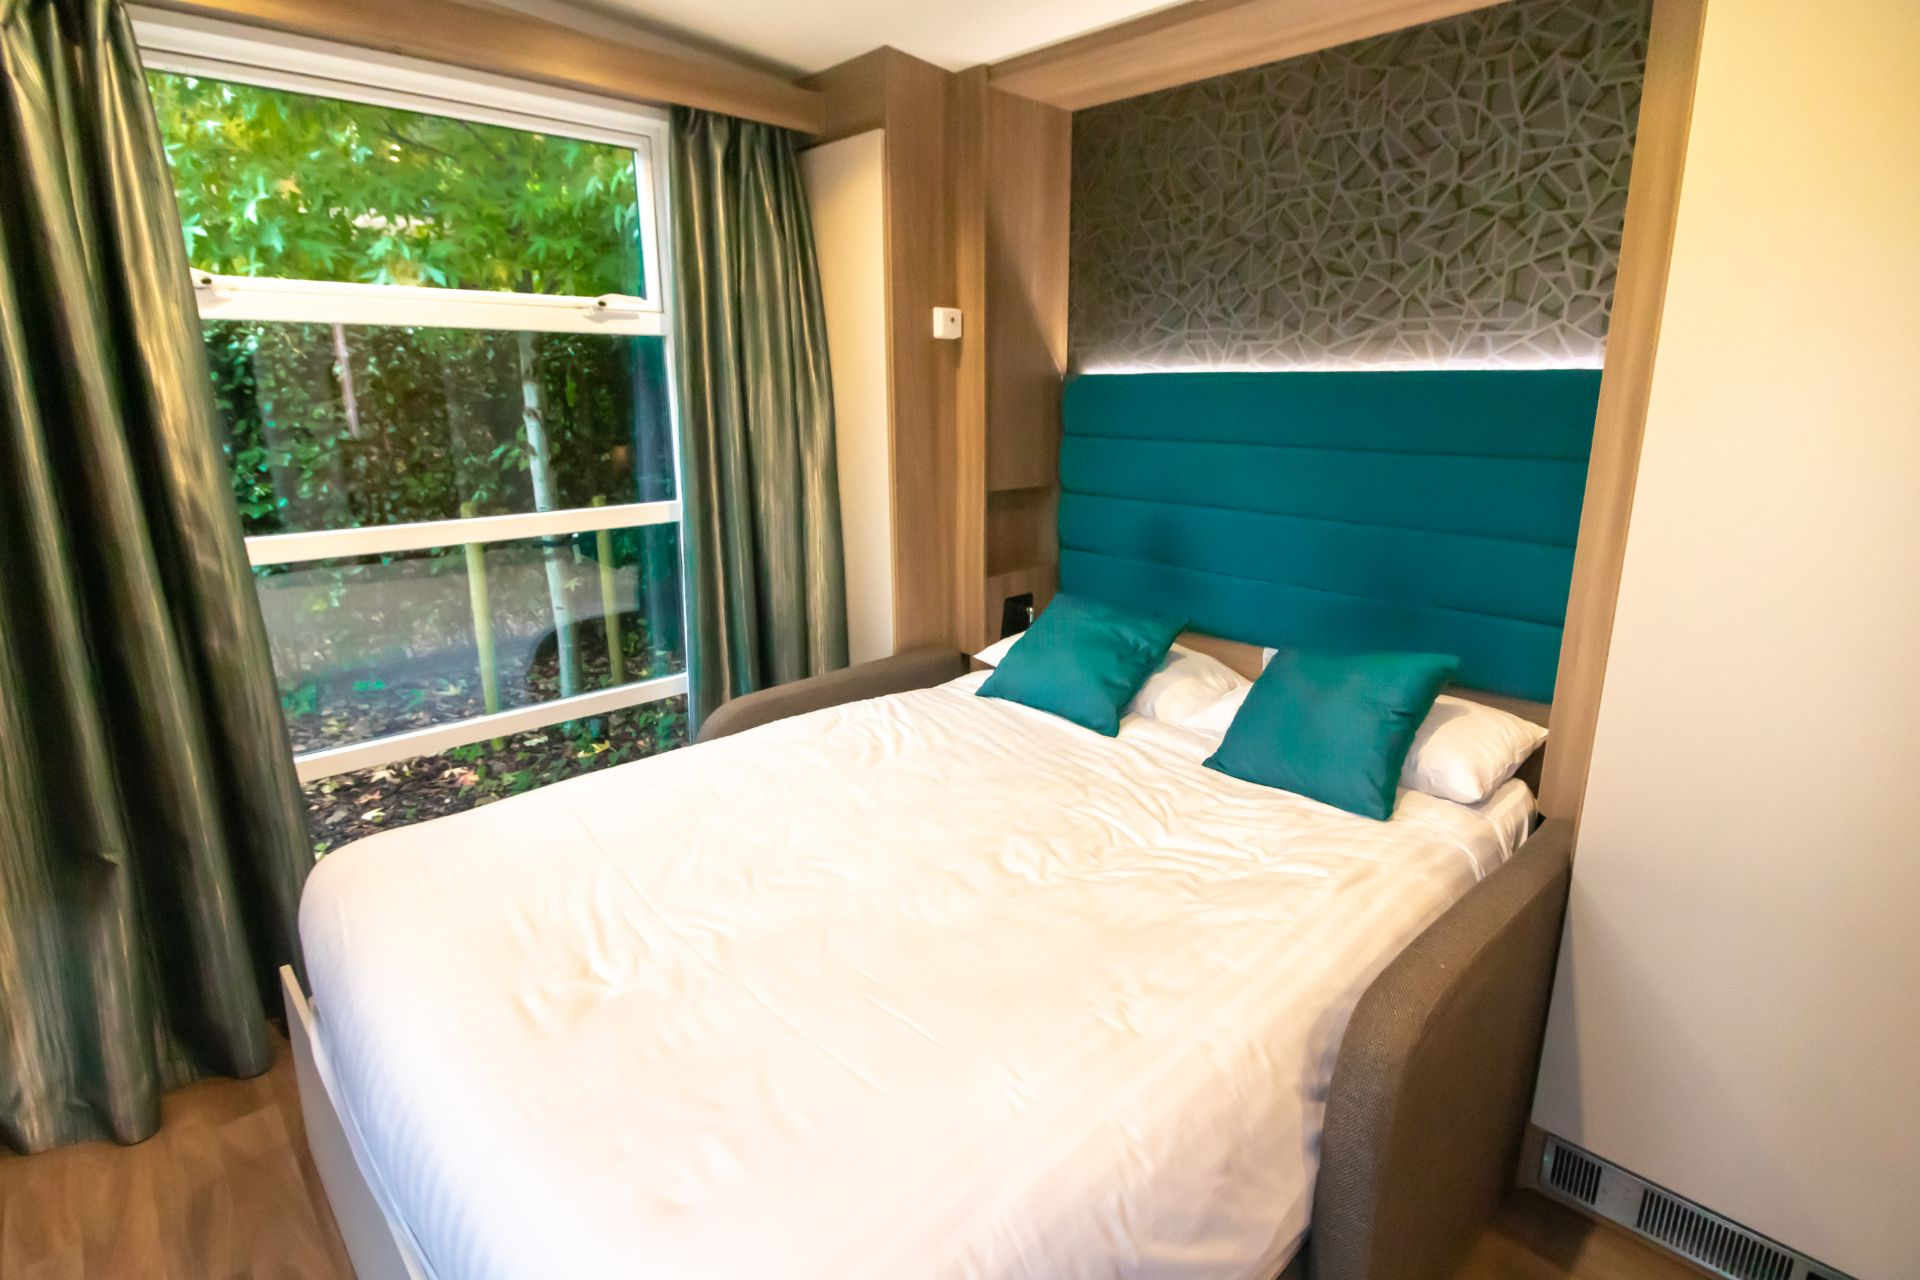 double-bed-interior-of-outdoor-glamping-pod-at-oxwich-bay-hotel-secret-garden